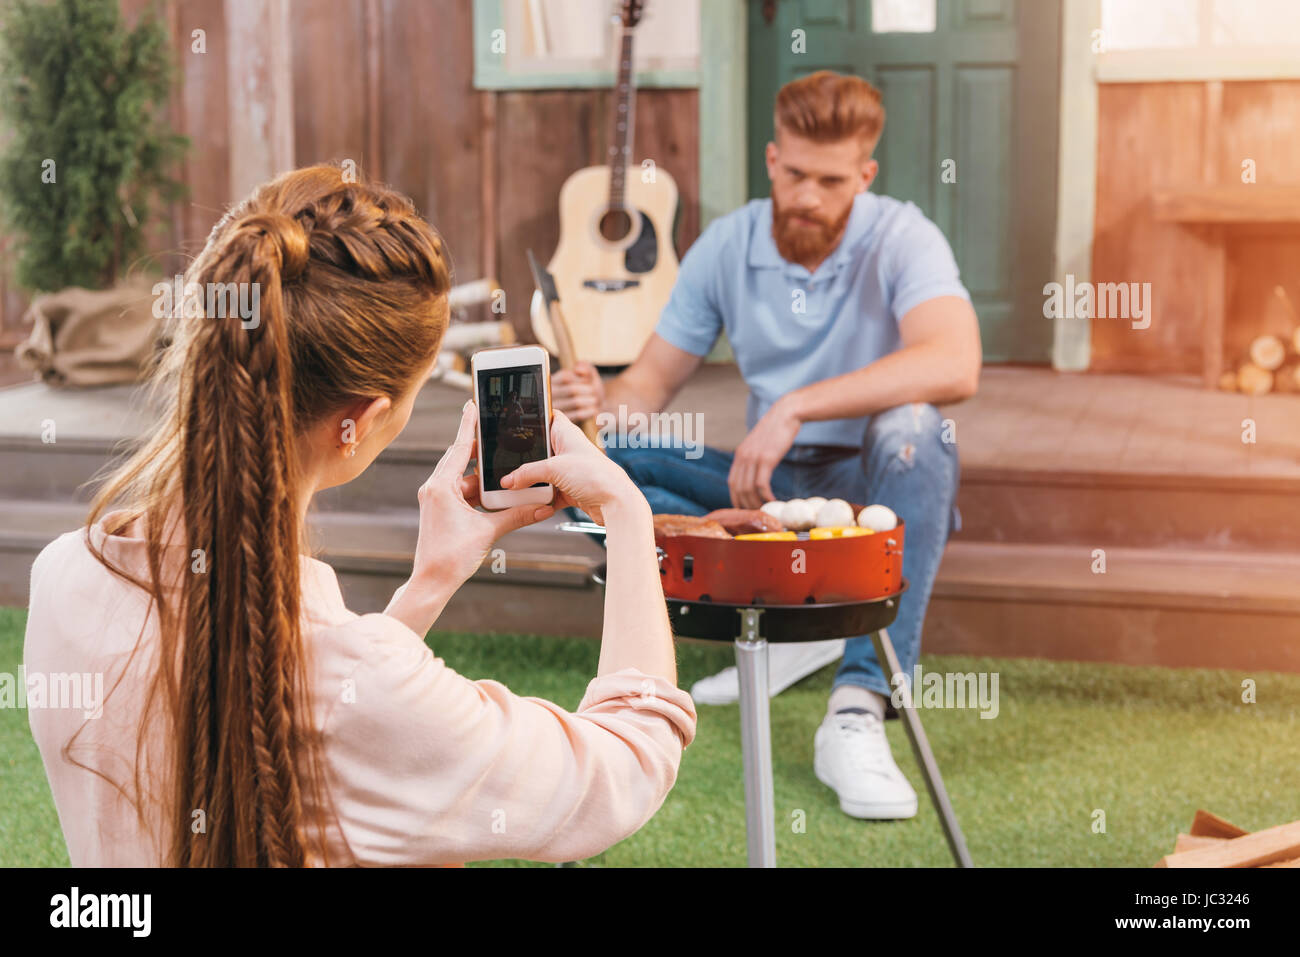 woman taking photo of man grilling meat on porch - Stock Image